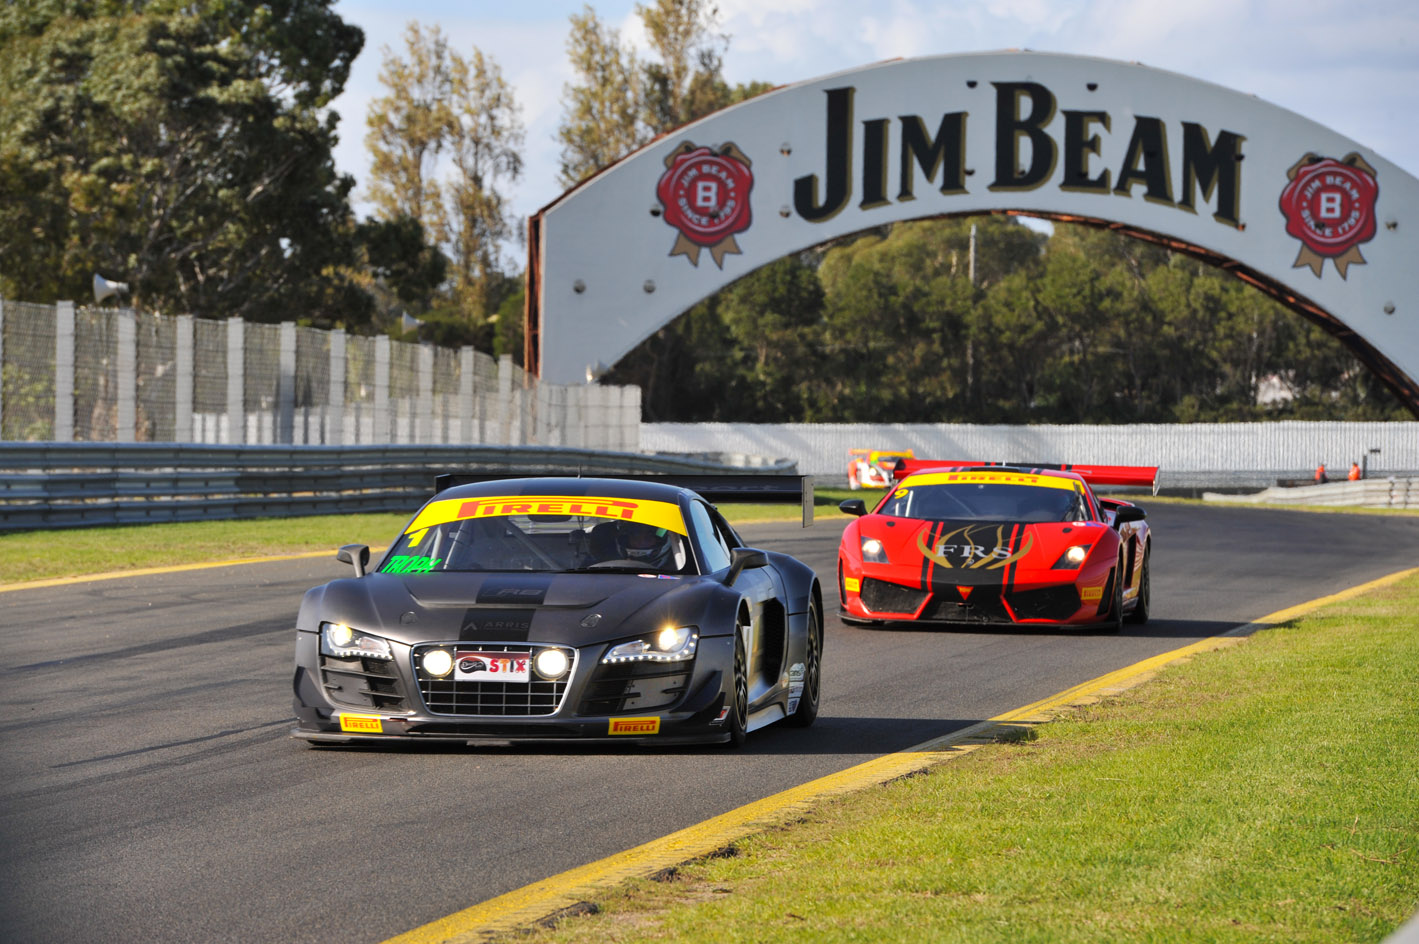 CAMS Australian GT Trophy Series presented by Pirelli opener declared 'complete success'